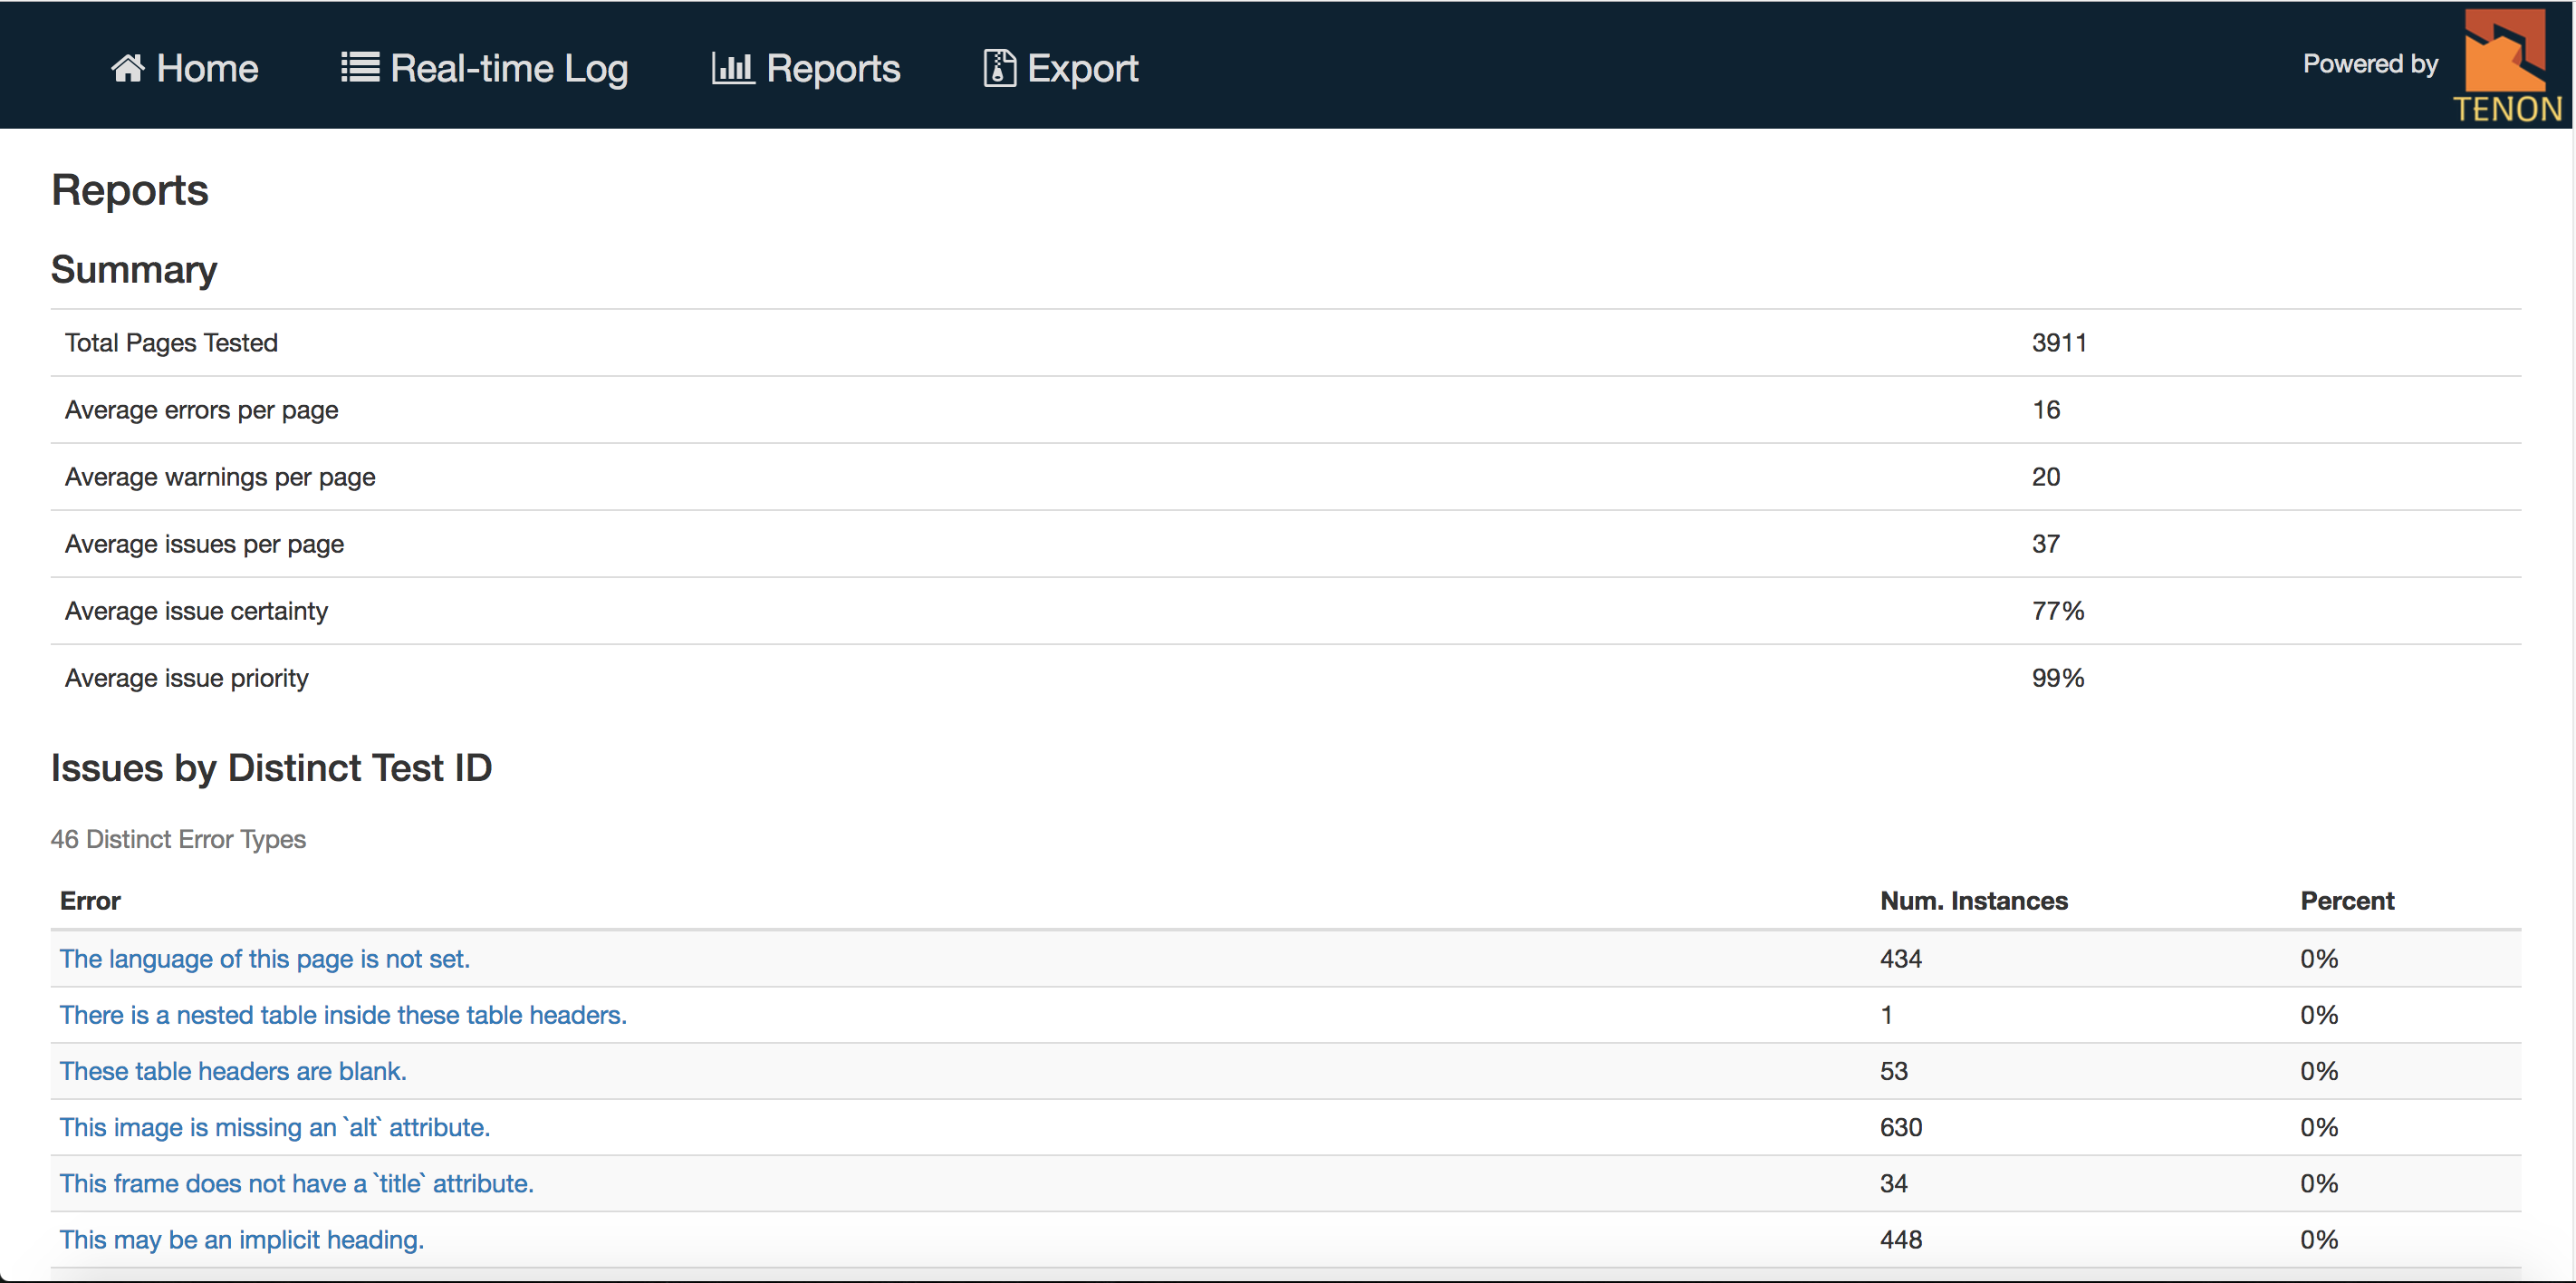 Report index page displays summary data and provides the ability to drill down for more detail